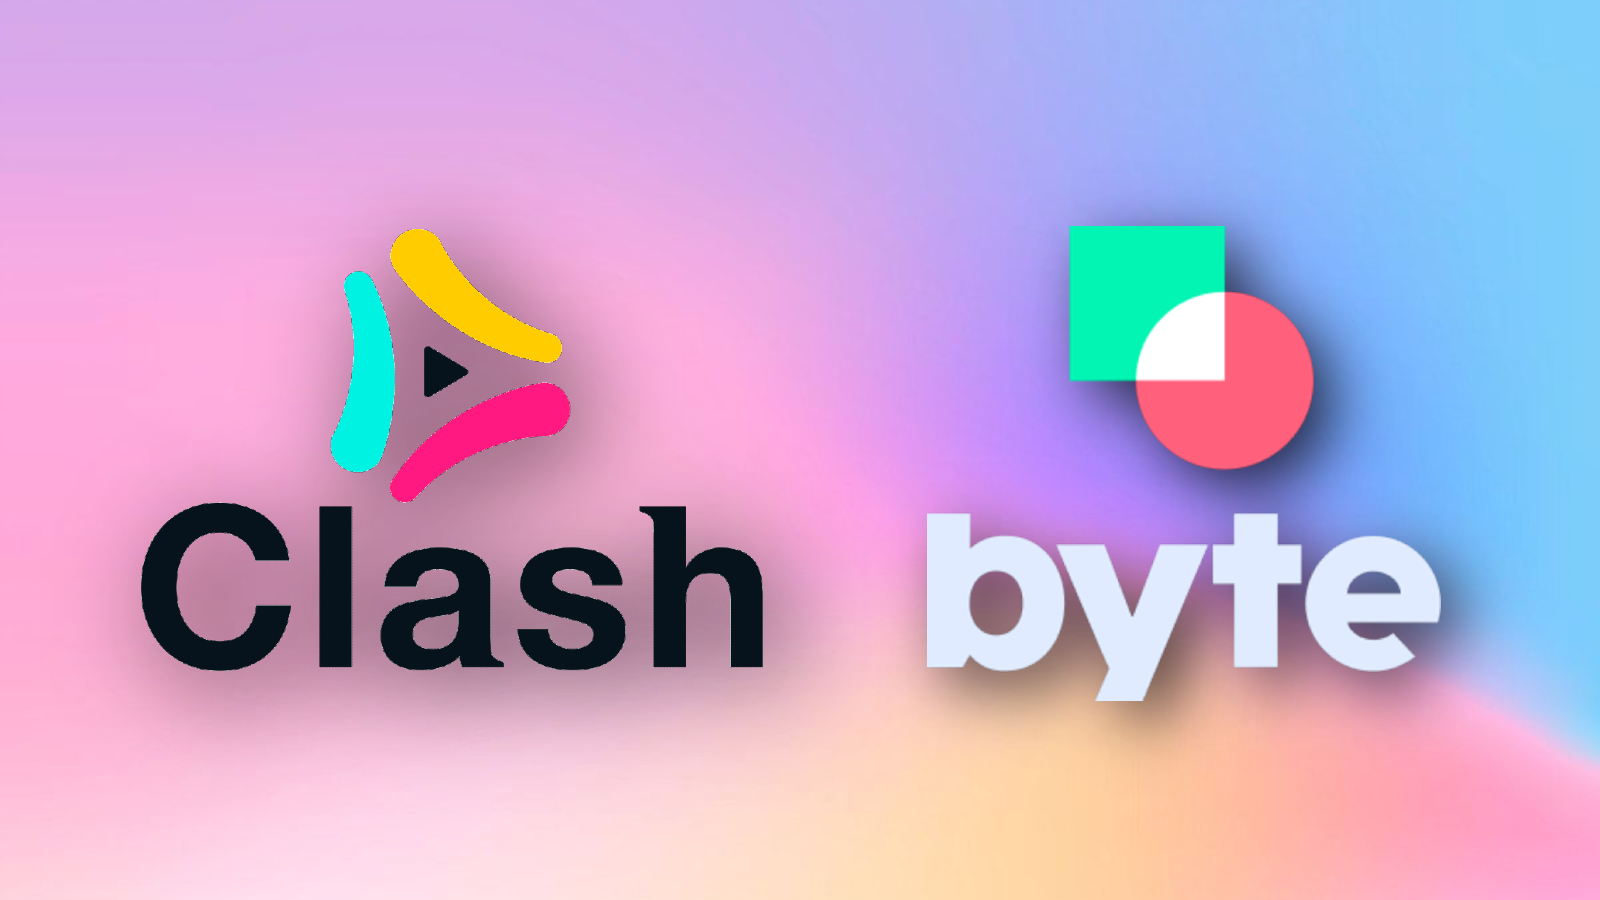 Clash and Byte merger tiktok competitors